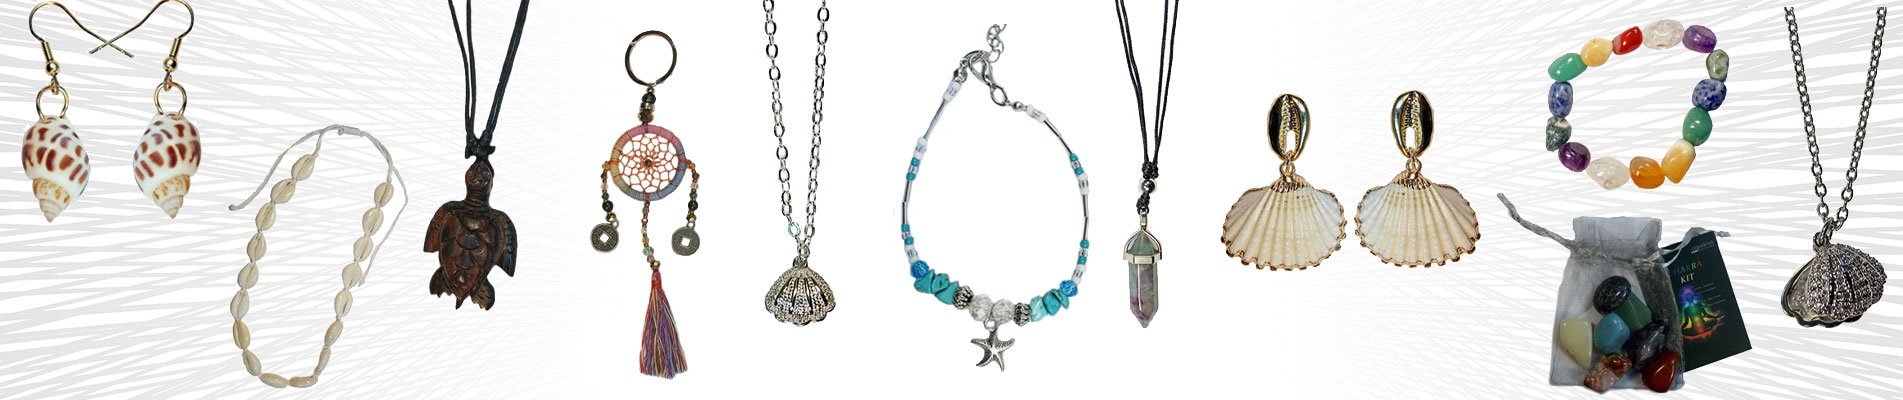 Aquarius Designs - Wholesale Jewellery